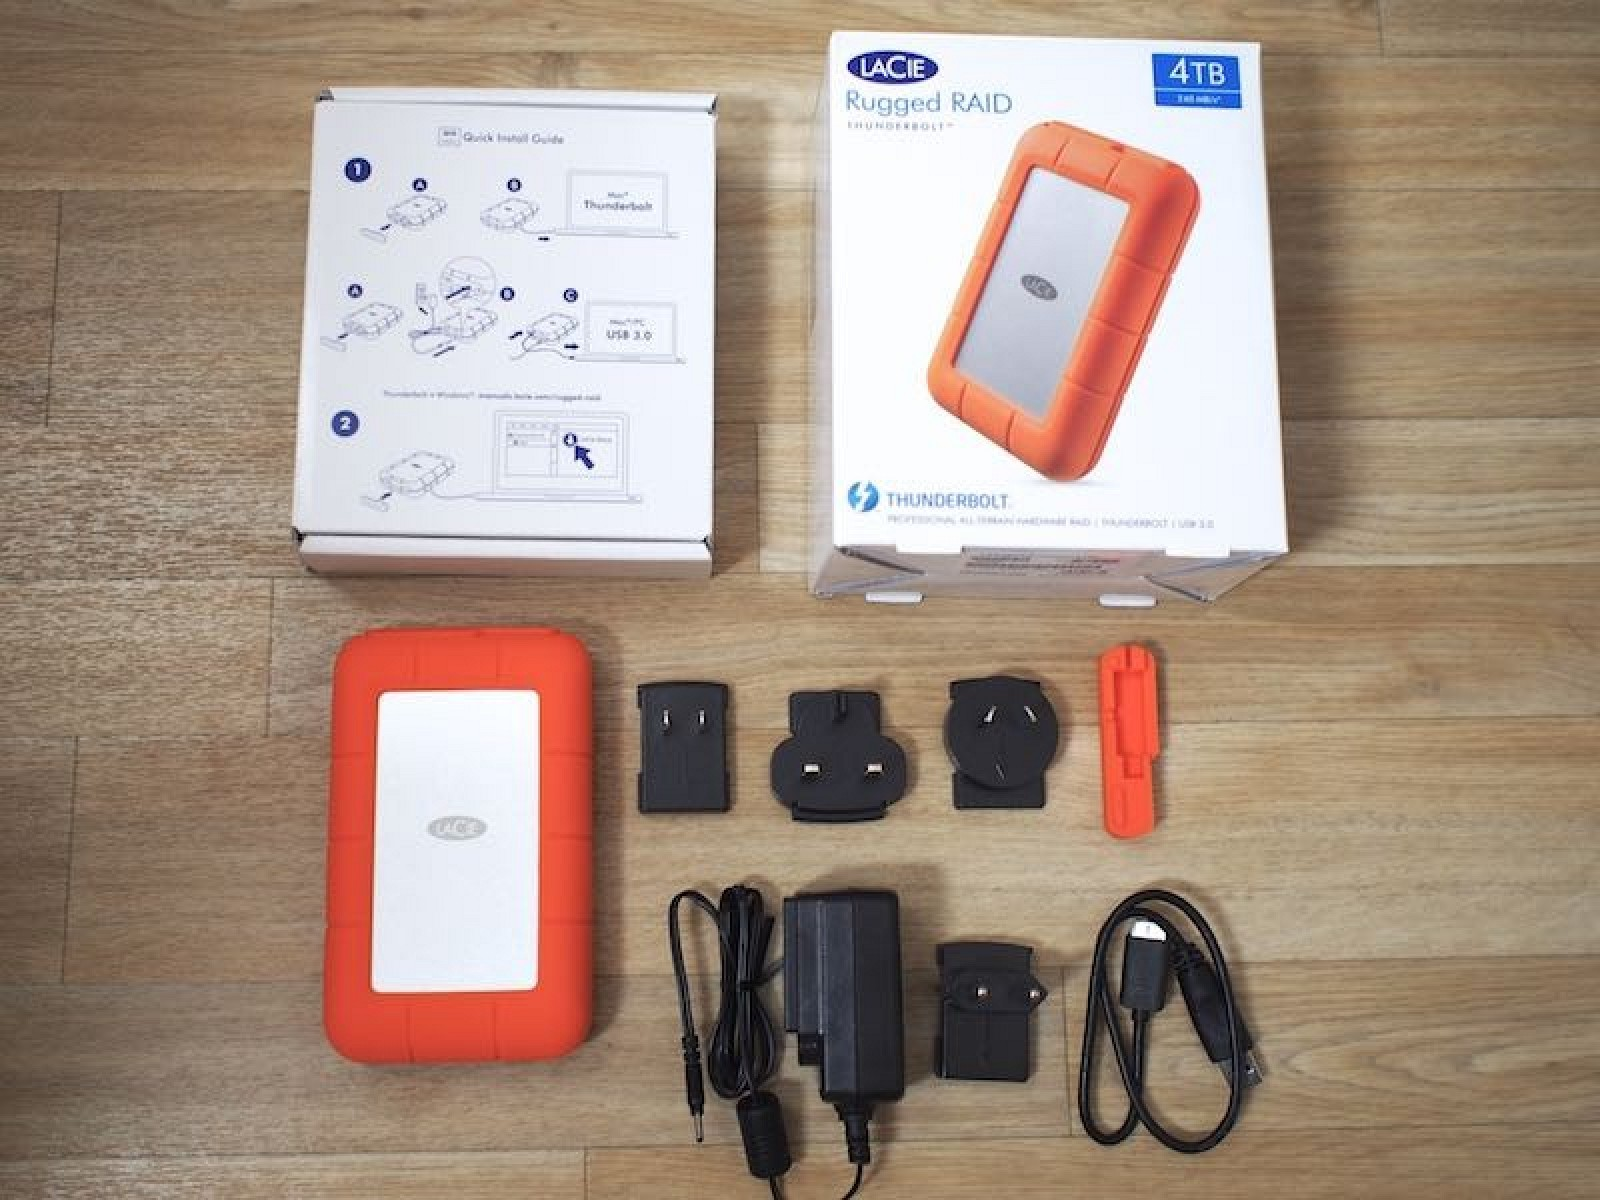 Lacie Review Hands On With The 4tb Rugged Raid Thunderbolt Hard Drive Macrumors